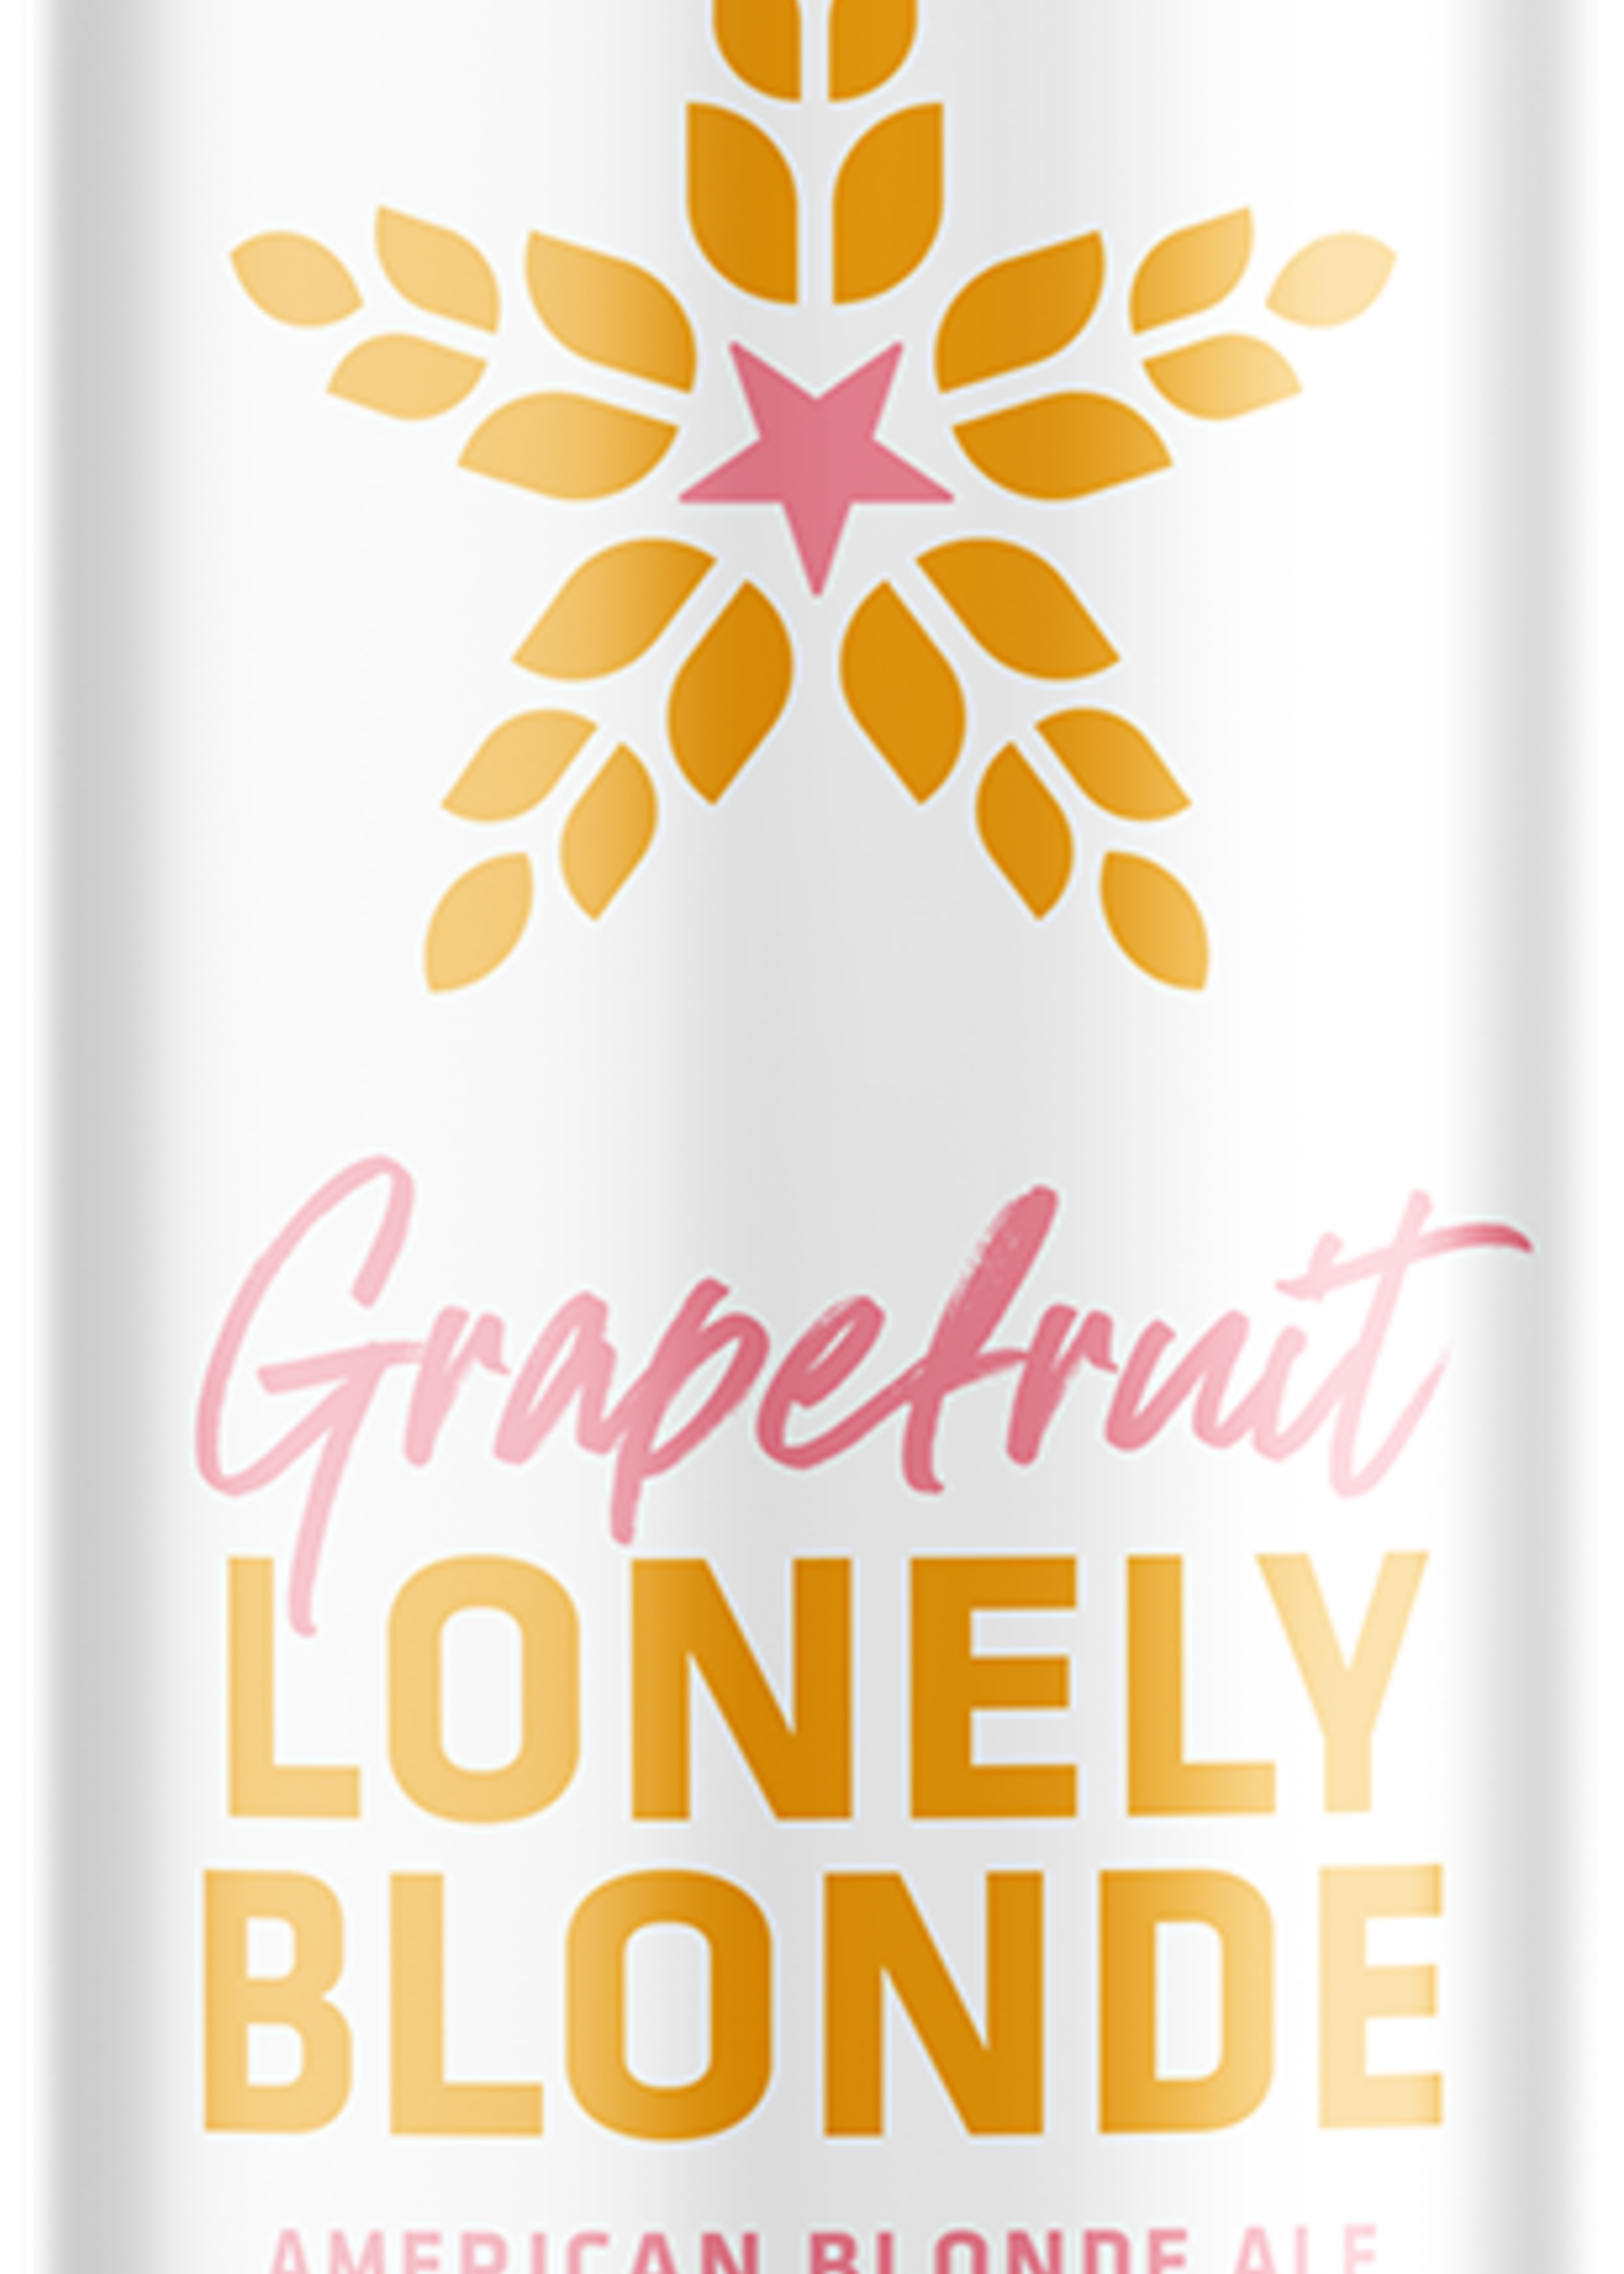 Fulton Grapefruit Lonely Blonde Can